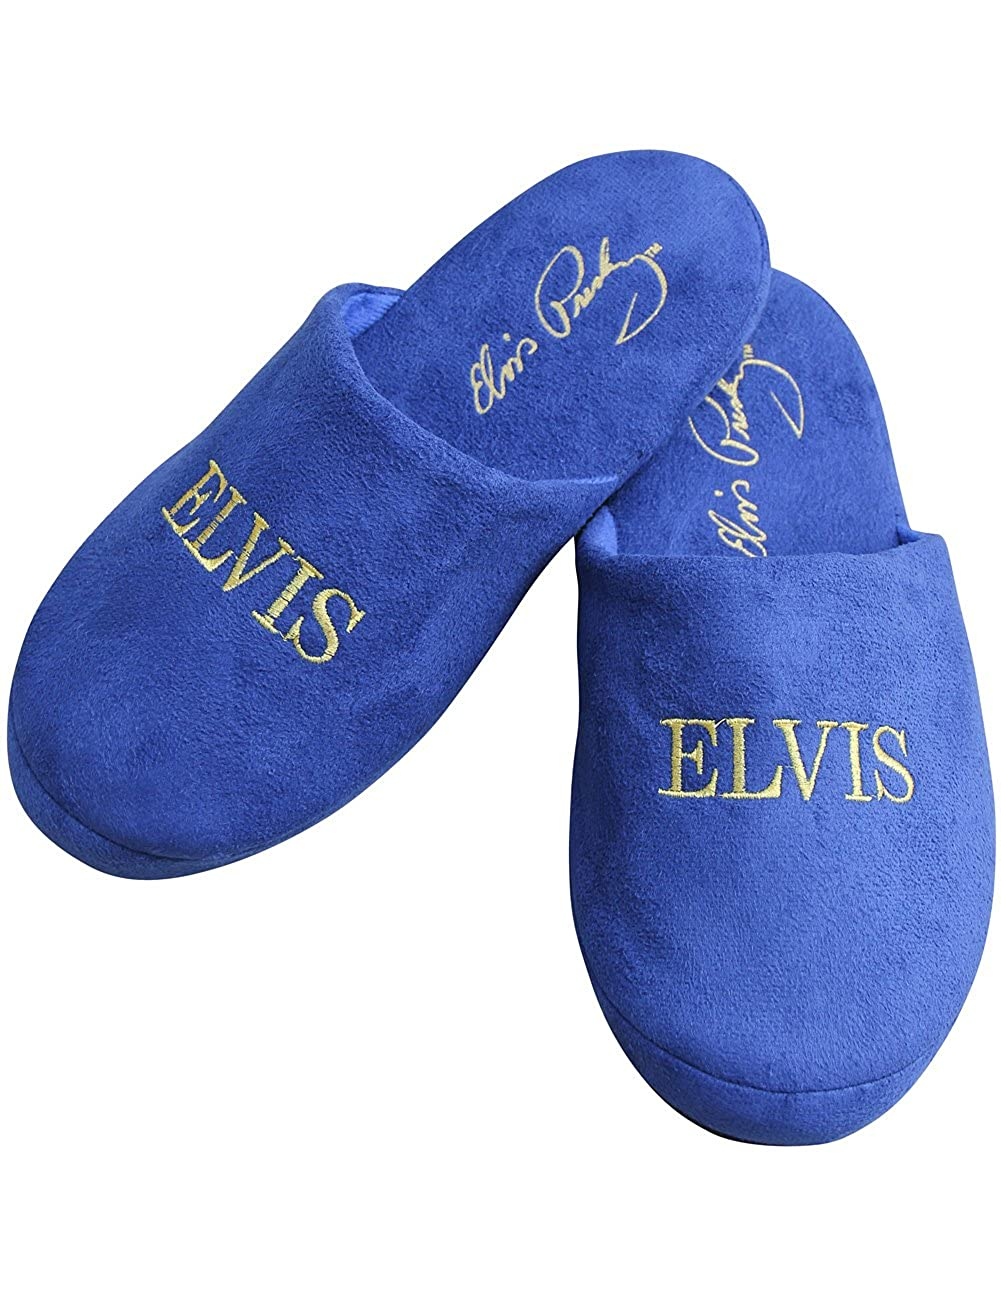 ca63f6d1655bf Midsouth Products Elvis Presley Slippers Blue Suede Shoes - One Size Fits  Most